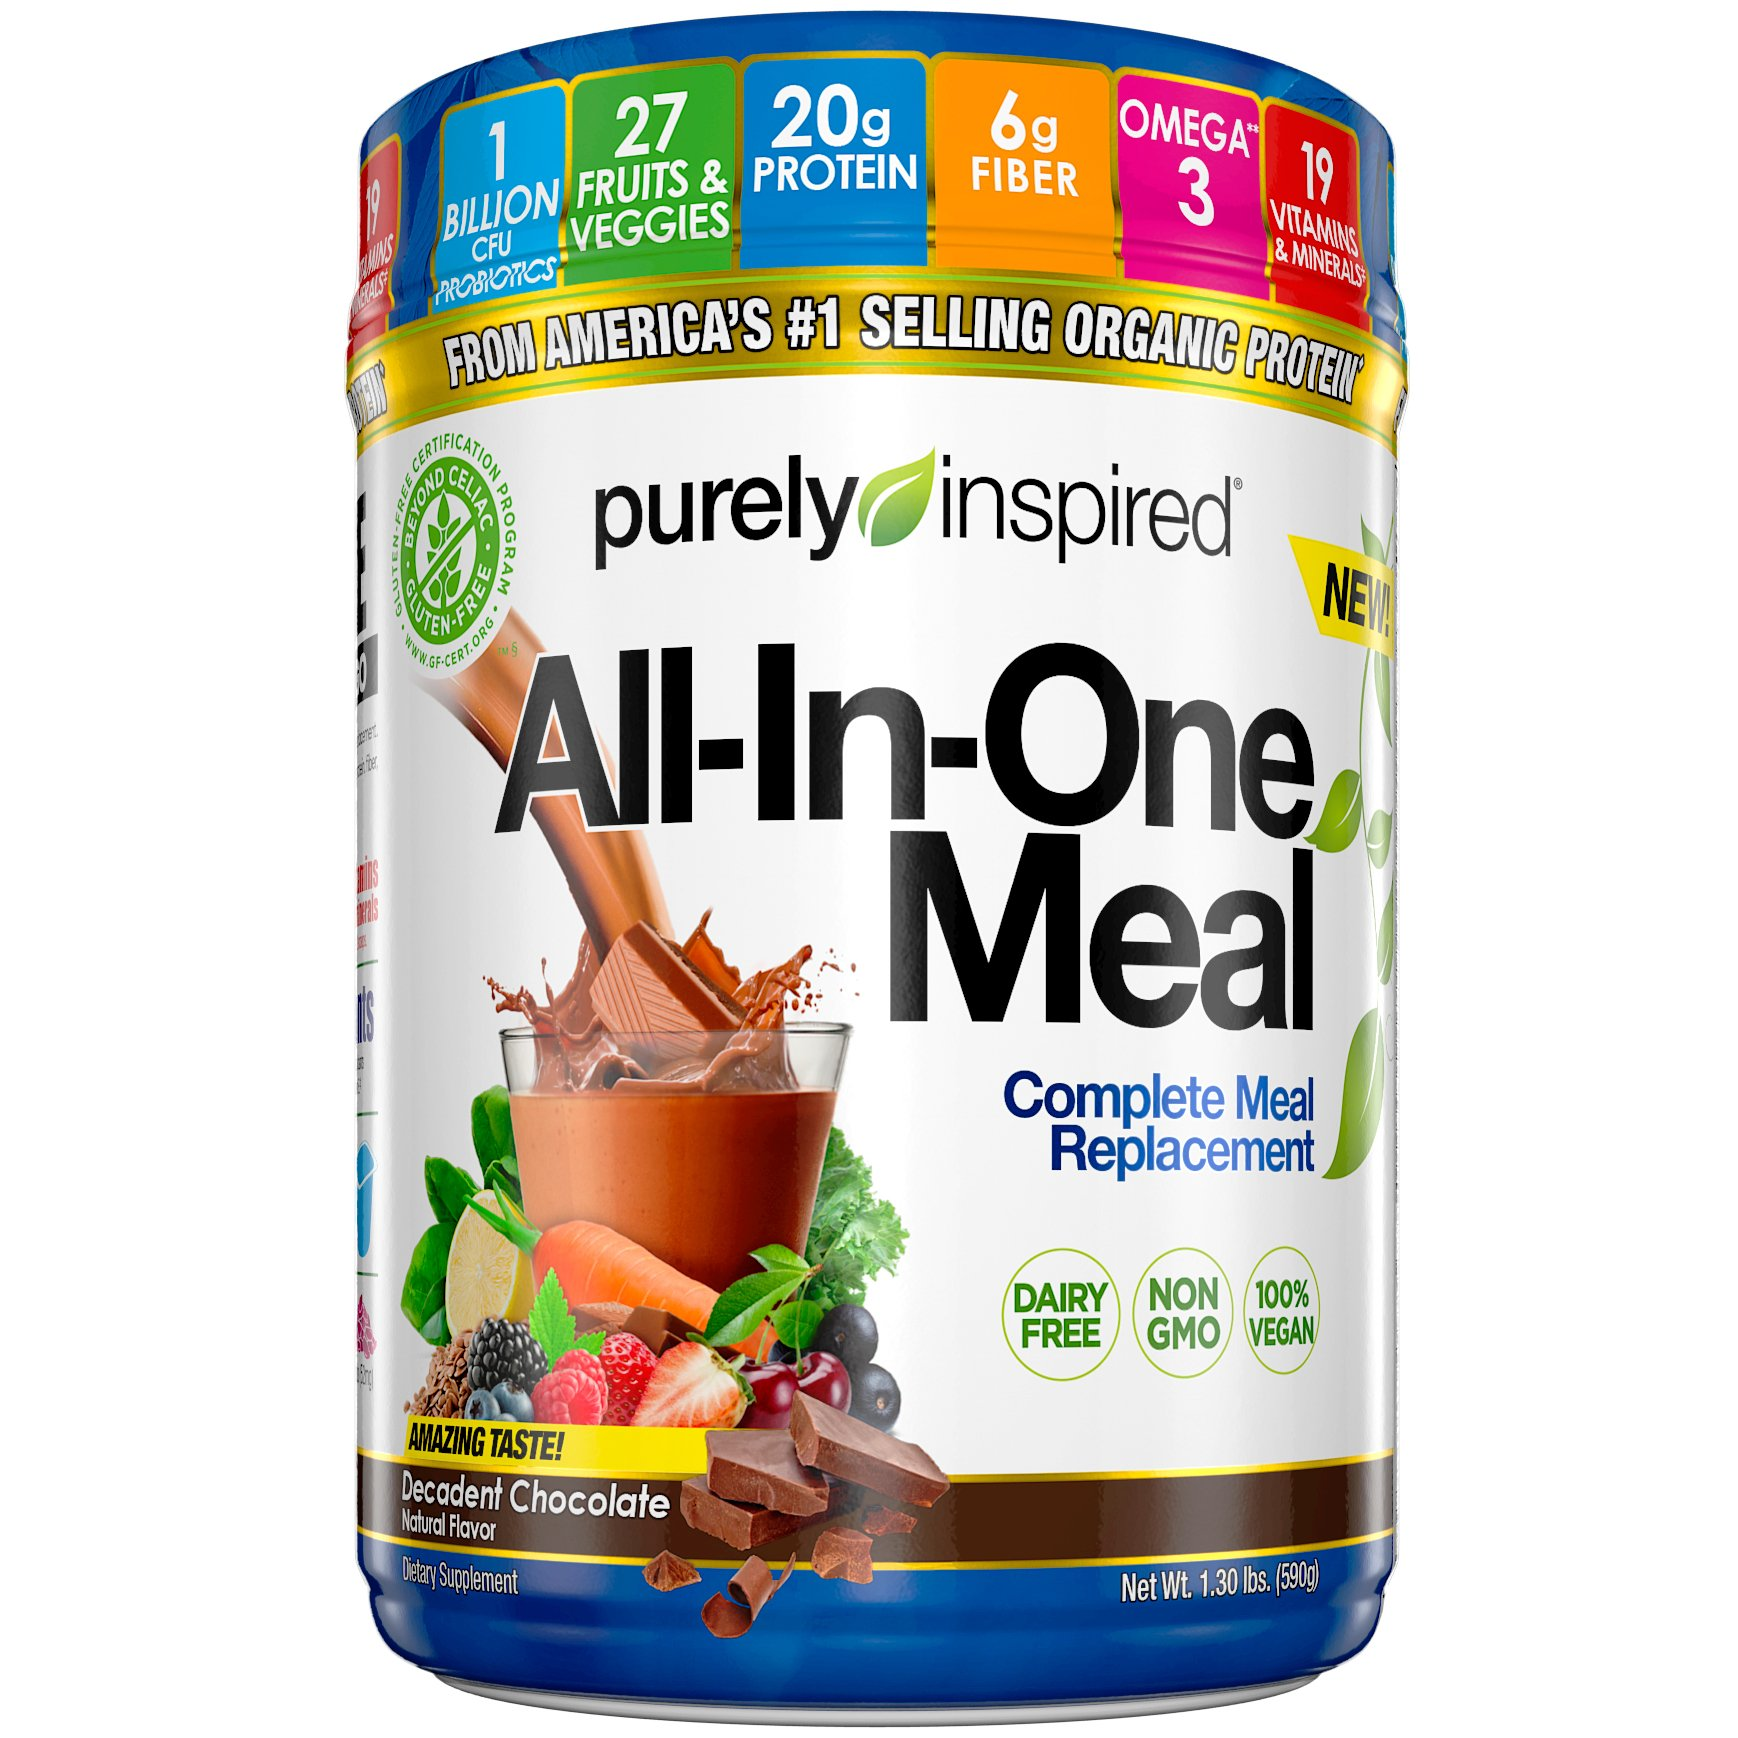 Purely Inspired All-in-One Meal Meal Replacement Shake Powder, Vegan, 20g Protein with Fiber, Vitamins, Minerals & Probiotics, Decadent Chocolate, 15 Servings (1.3lbs) by Purely Inspired